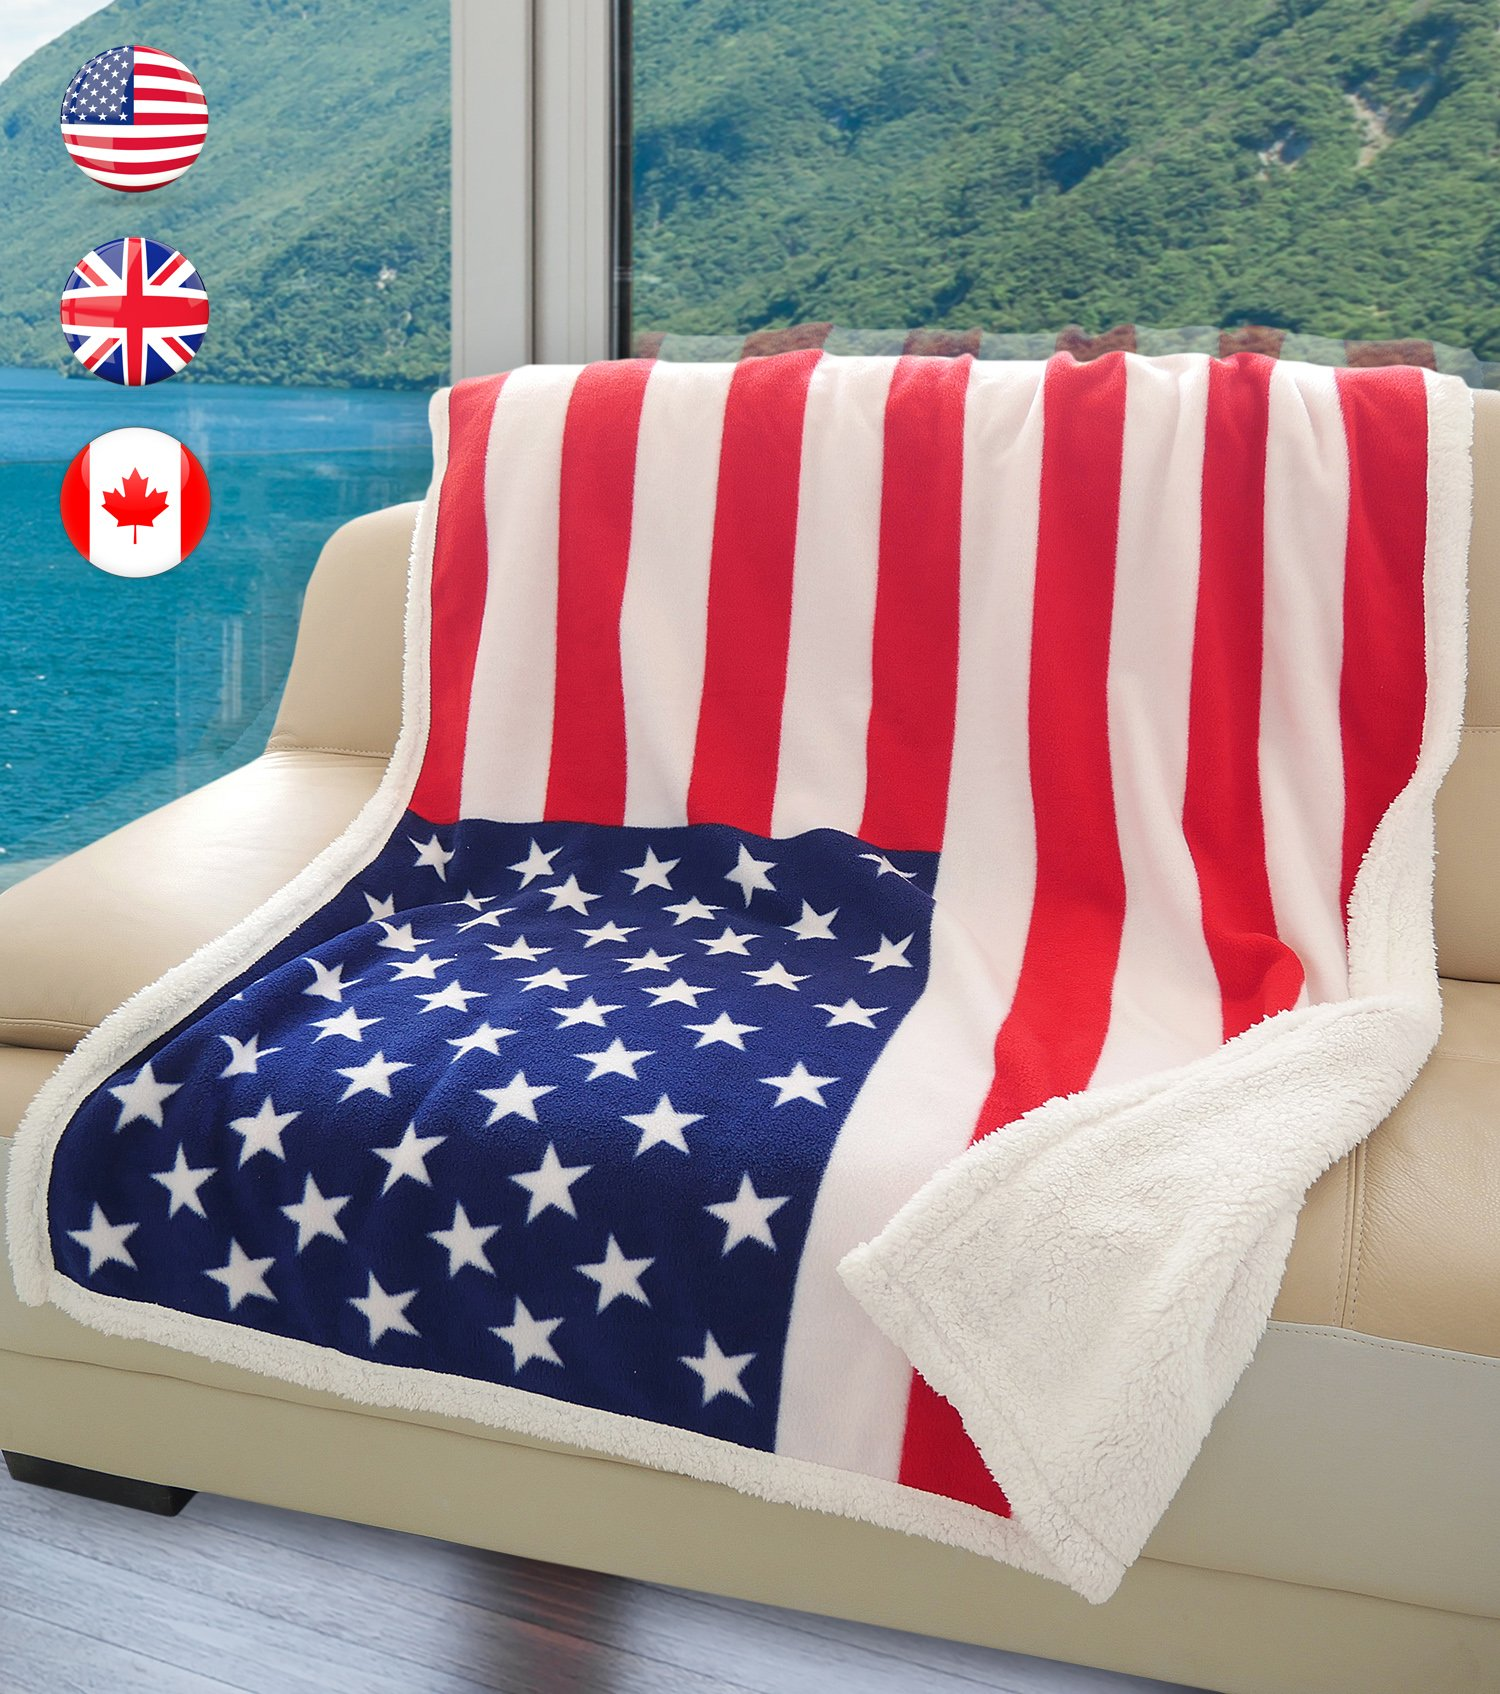 US Flag Patriotic Sherpa Throw Blanket, Super Cozy Fleece Plush Bed Throw TV Blankets Reversible for Bed or Couch 50'' x 60'' | Catalonia series by Terrania | USA Flag